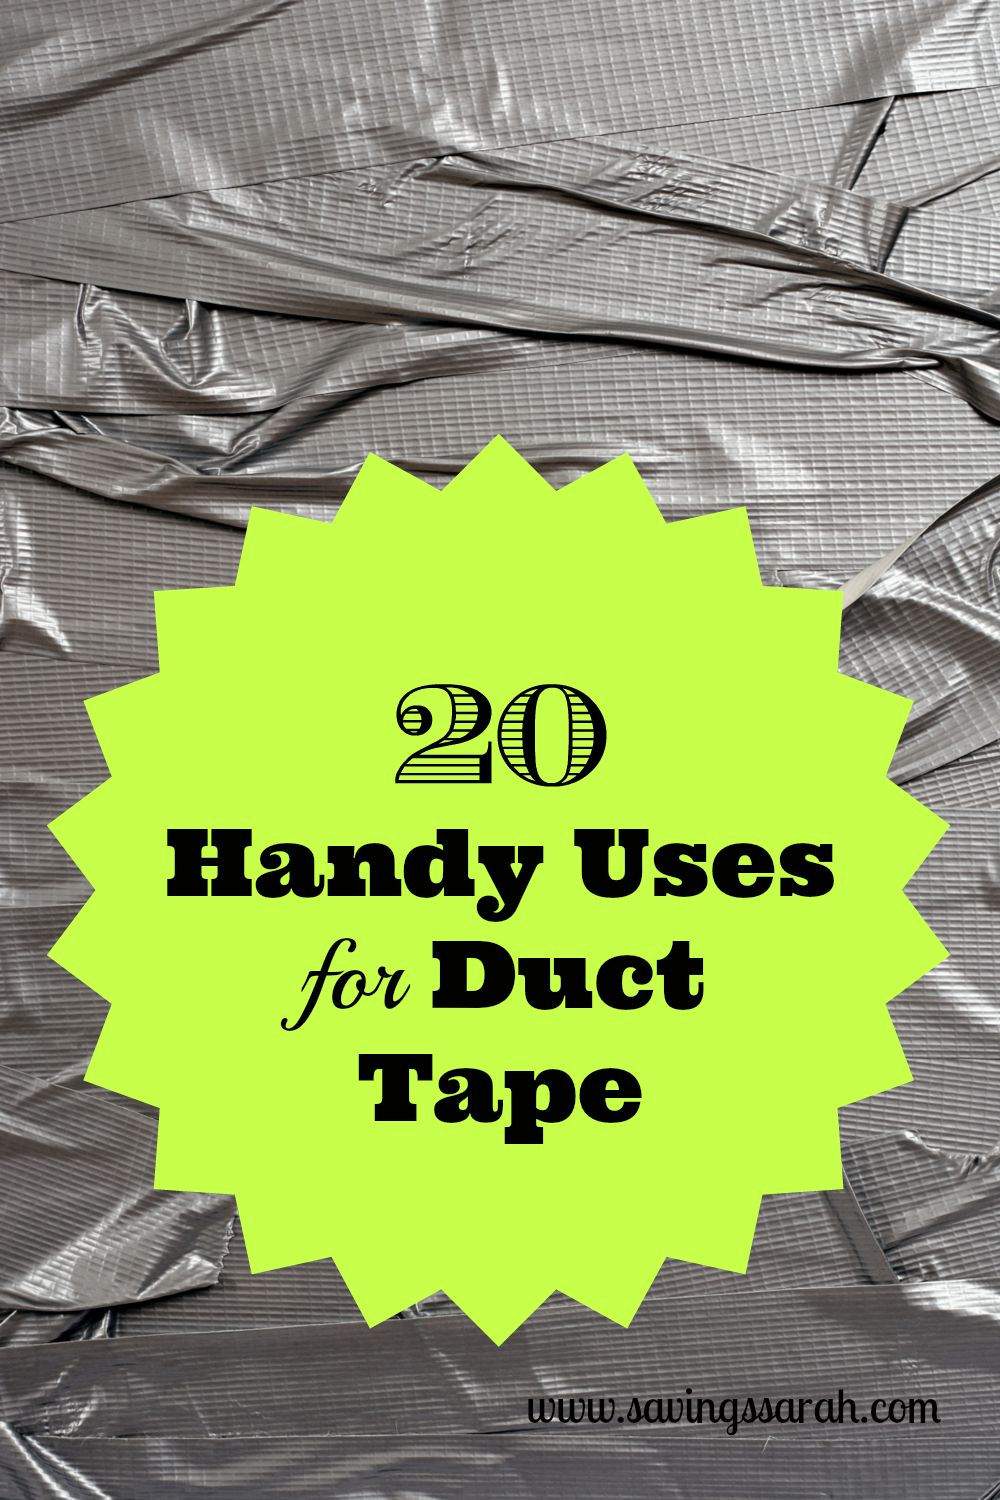 20 Handy Uses For Duct Tape